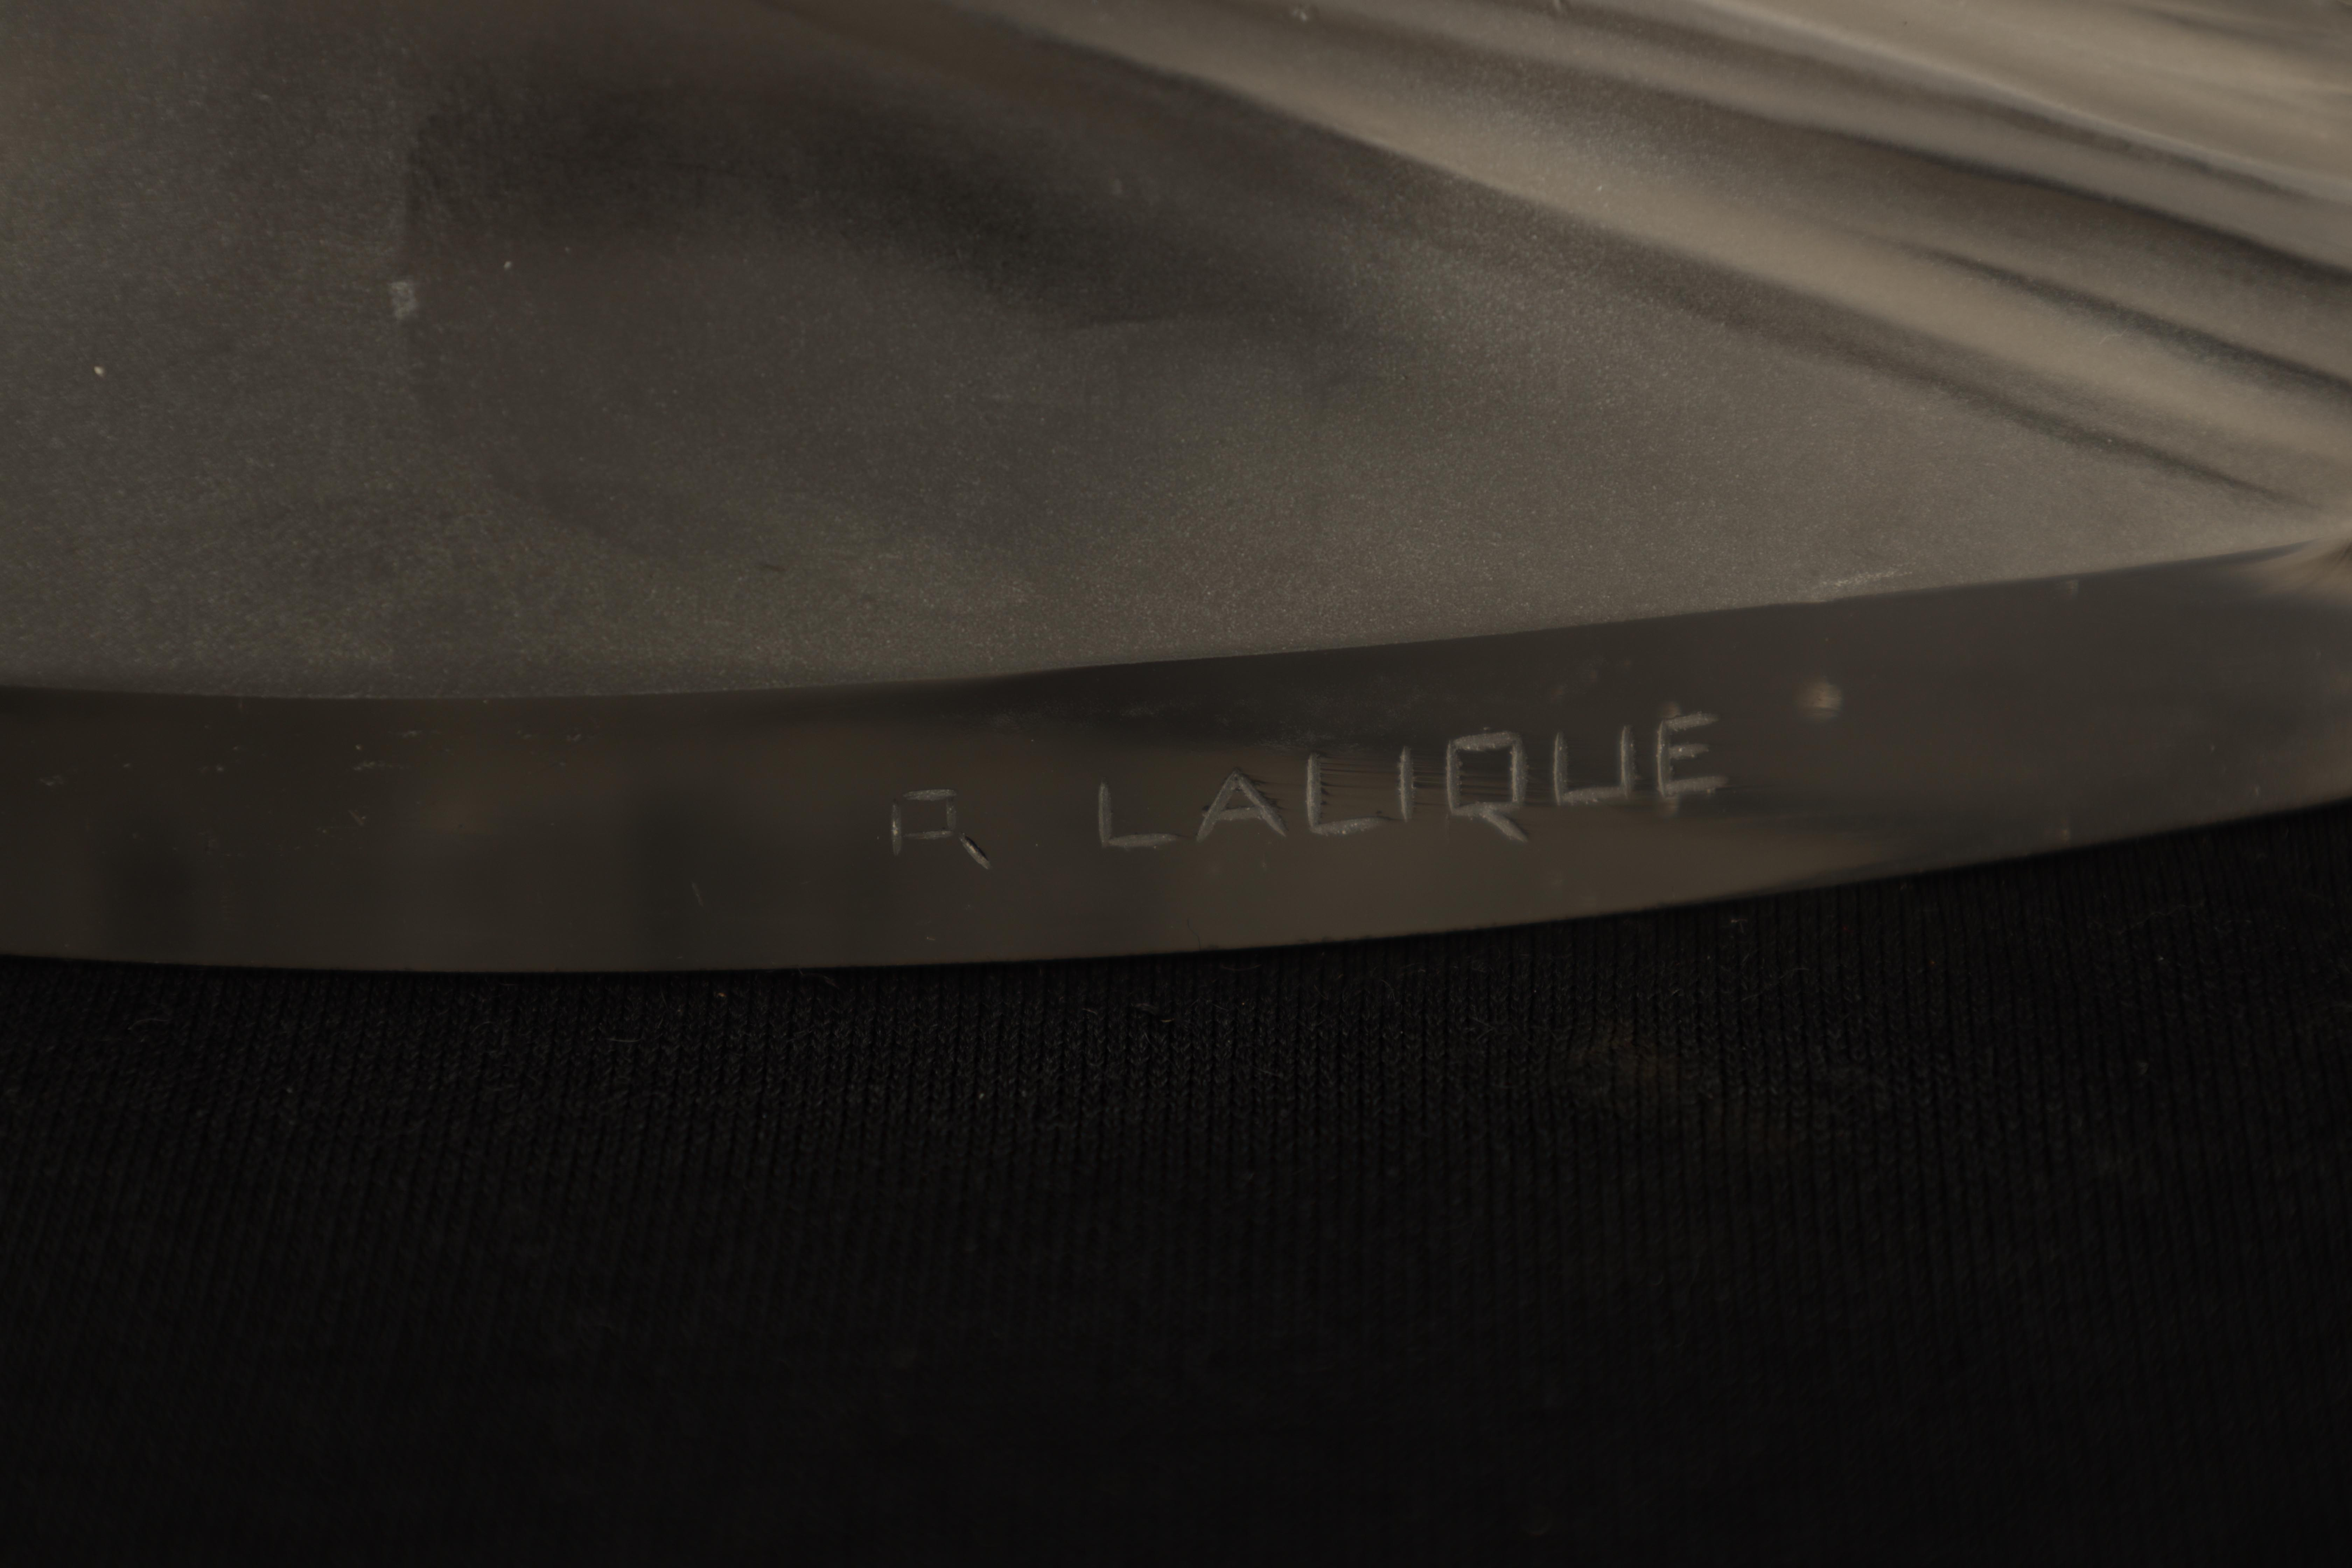 R LALIQUE, A CLEAR 'COTE D'AZUR' GLASS PAPERWEIGHT with curved base and form, concave top and base - Image 5 of 6